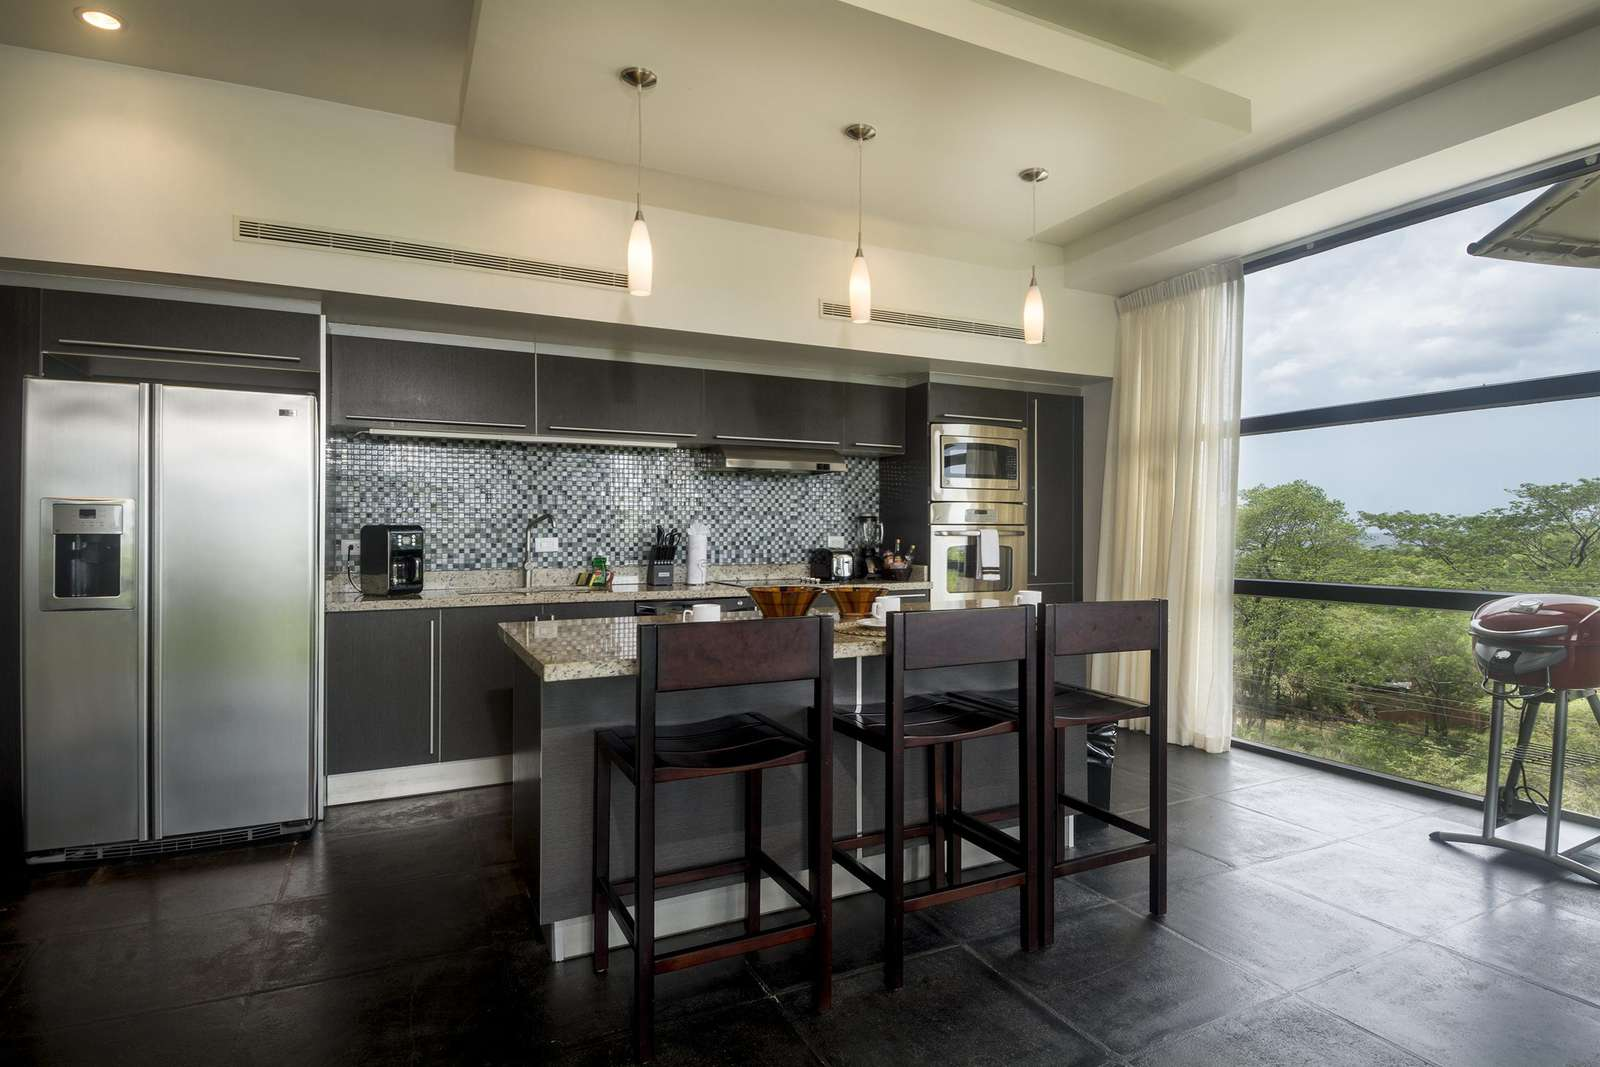 Spacious gourmet kitchen, breakfast bar